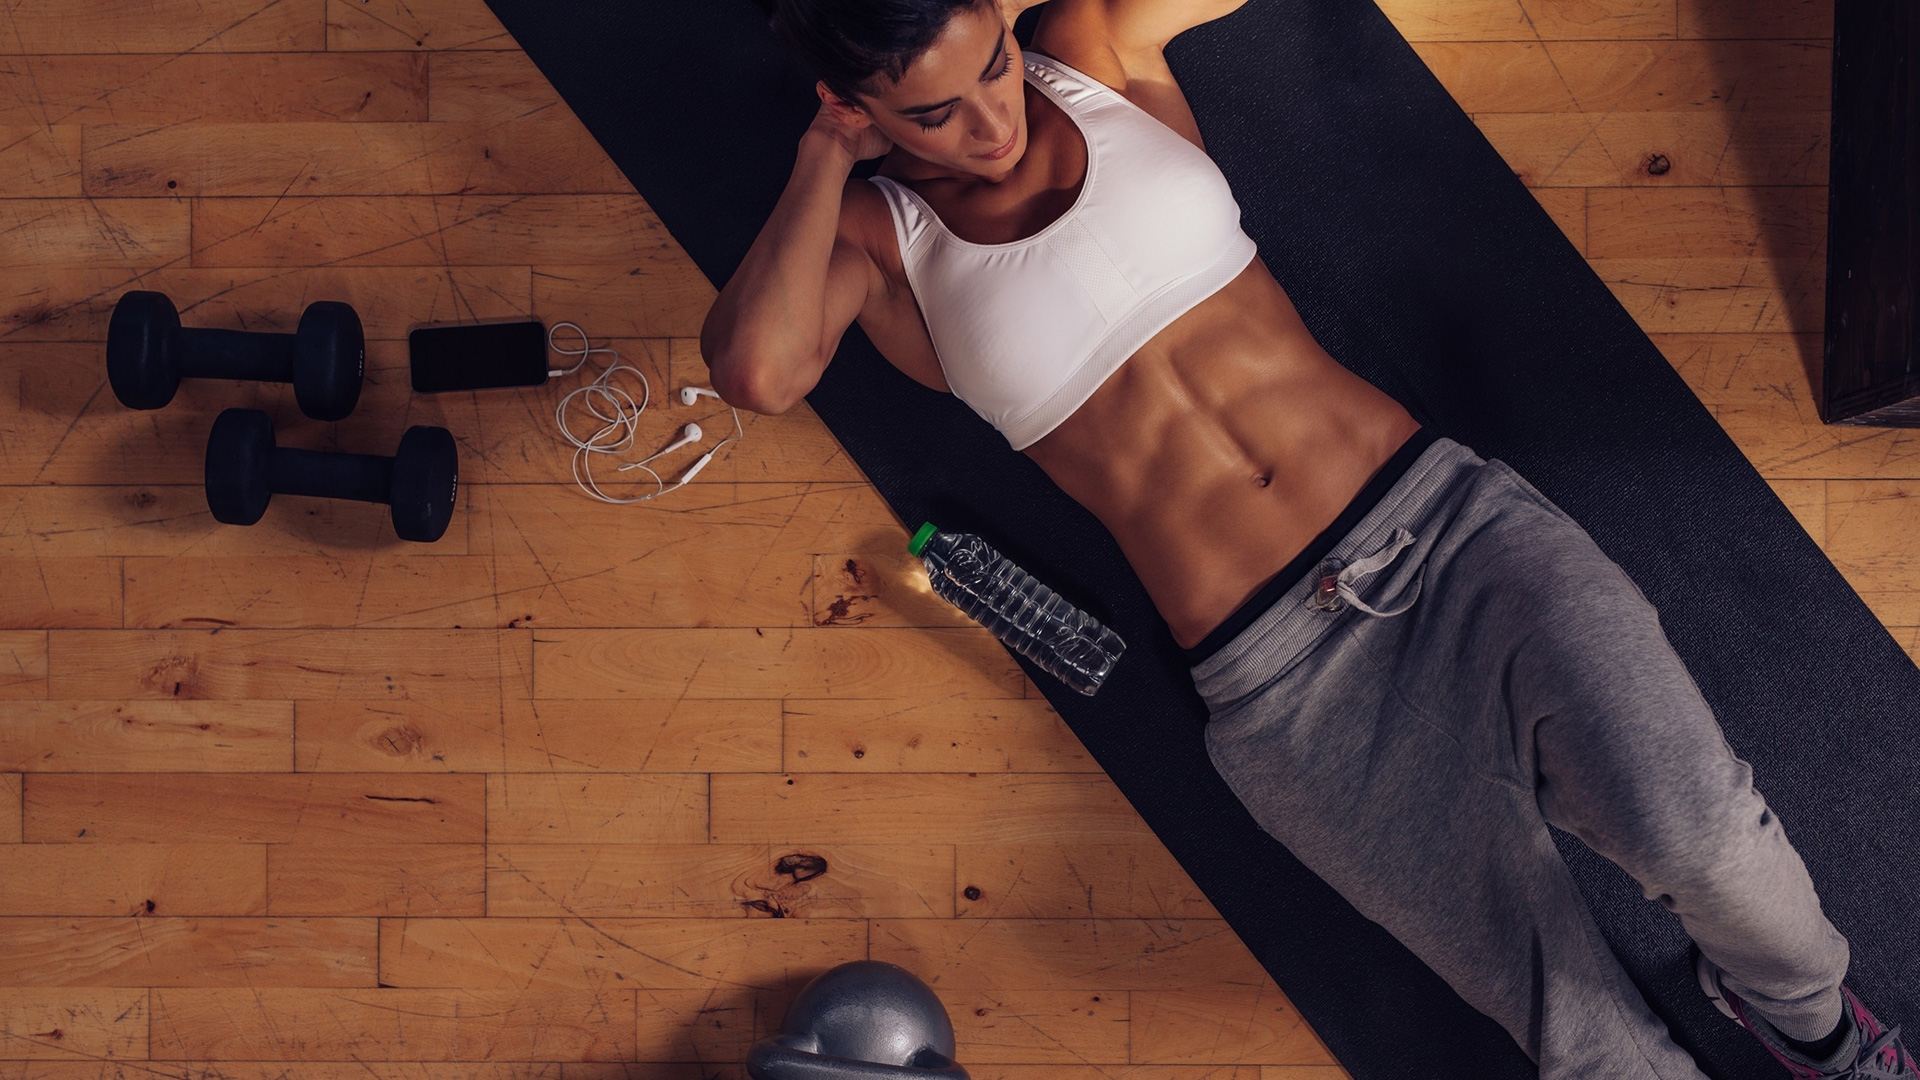 Abs training on a yoga mat